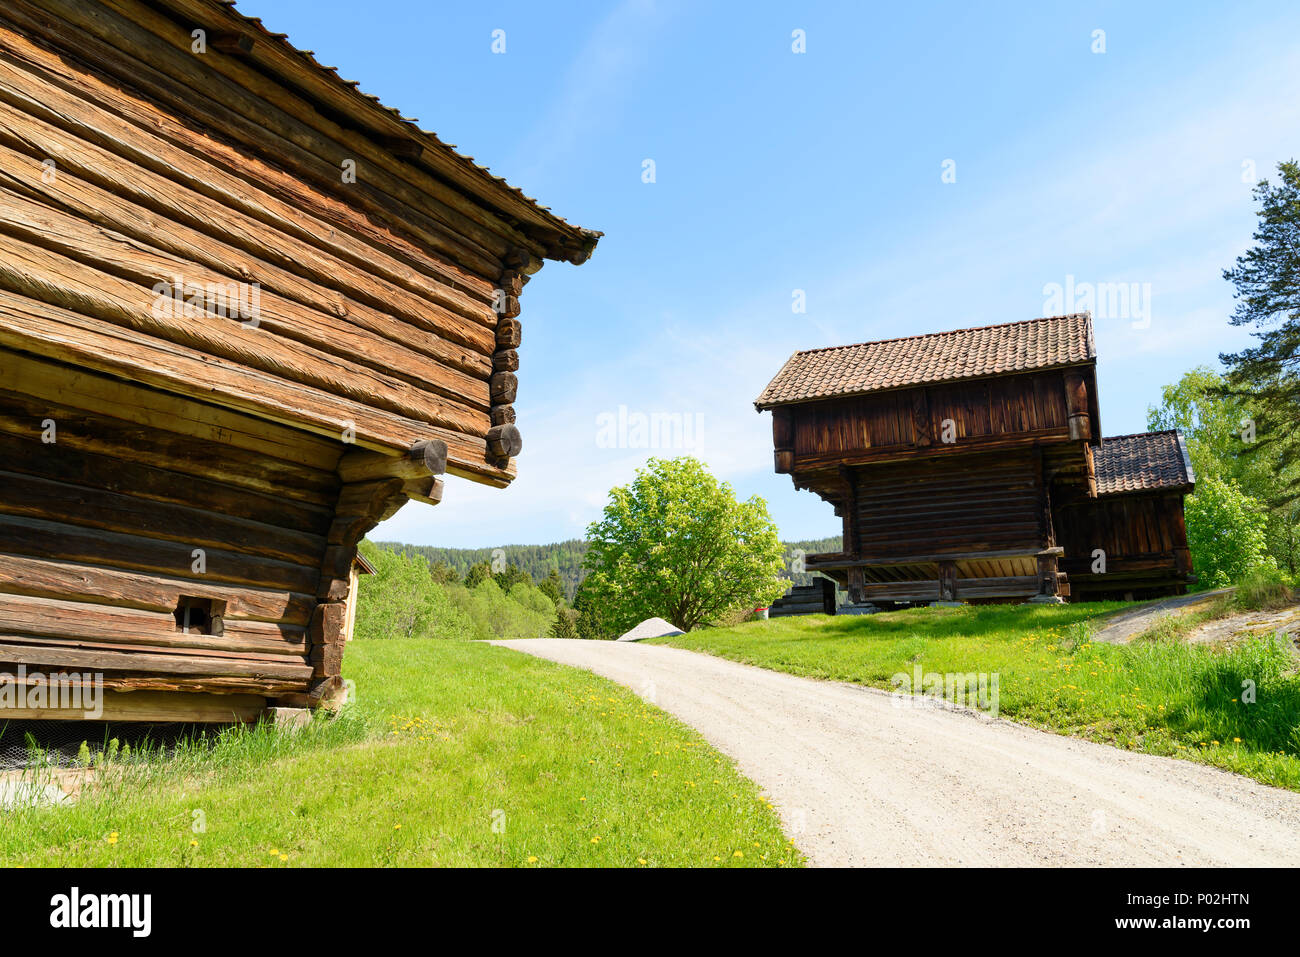 Charmant Old Wooden Storage Buildings On Either Side Of A Road On The Norwegian  Countryside On A Sunny Day. Location Heddal, Norway.